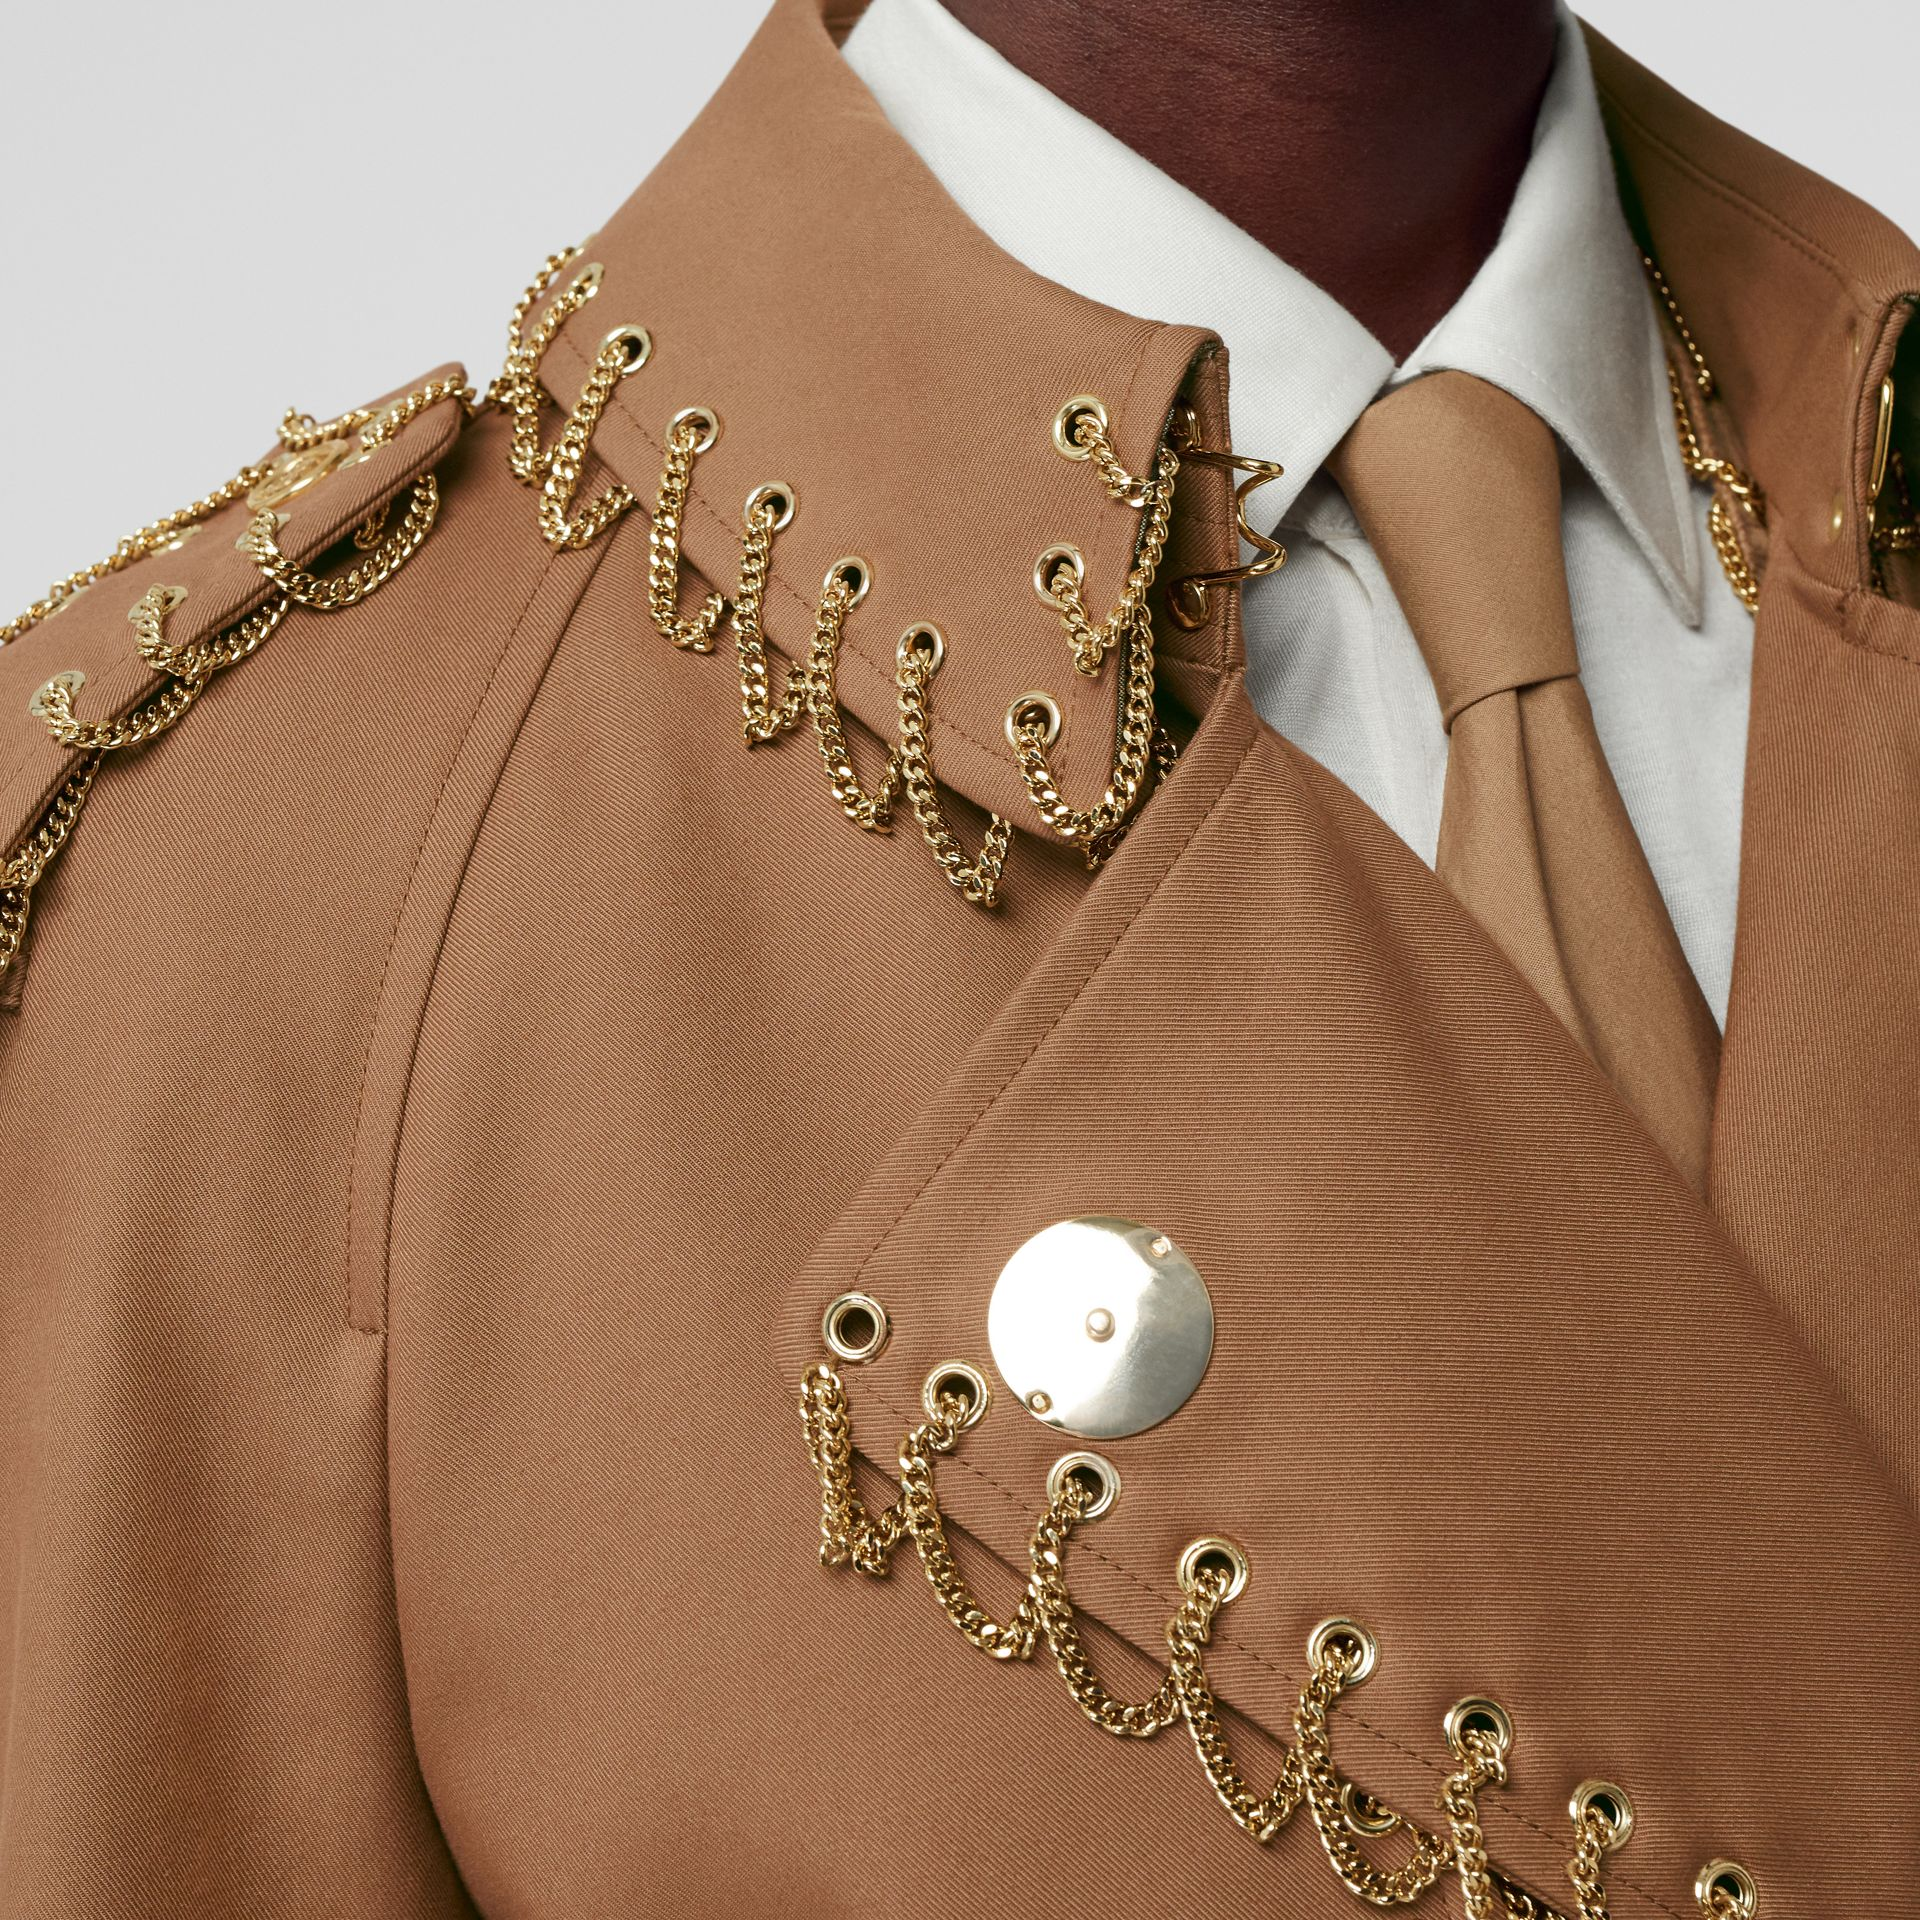 Chain Detail Cotton Gabardine Trench Coat in Warm Walnut - Women | Burberry United States - gallery image 4